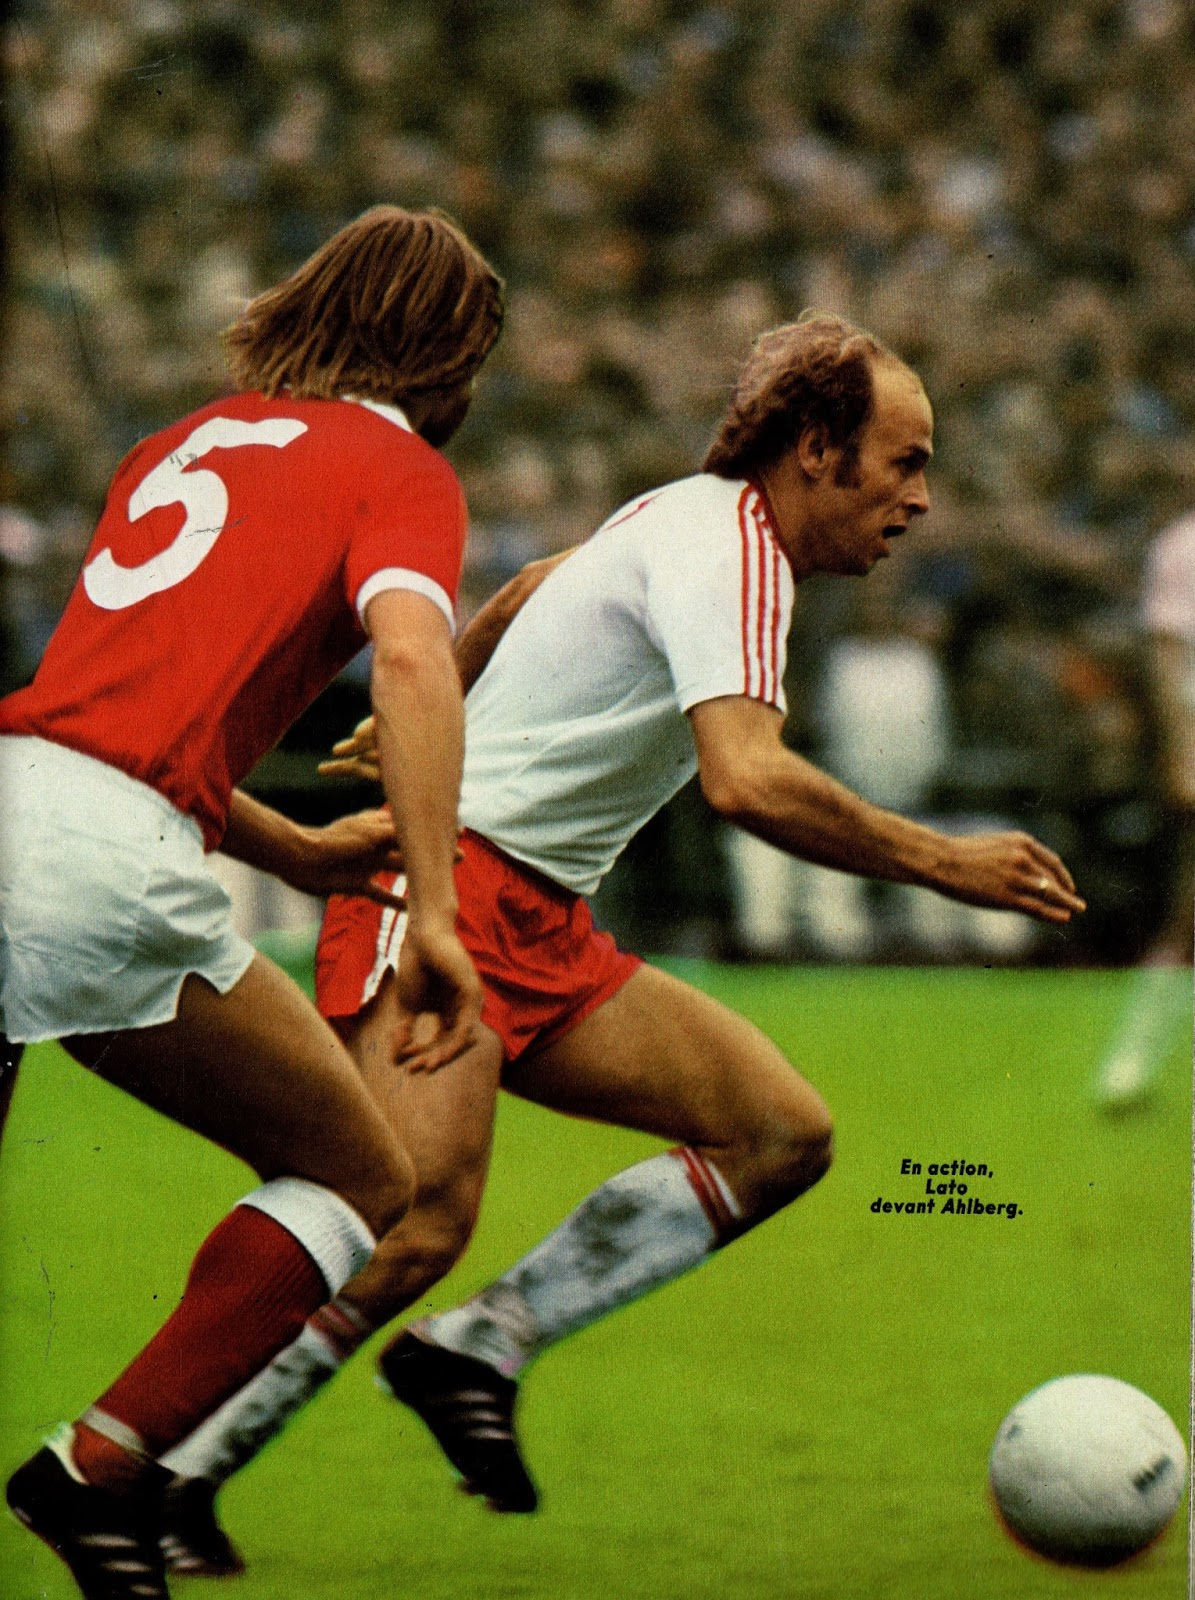 Soccer Nostalgia May 1 1977 Denmark 1 Poland 2 World Cup Qualifying